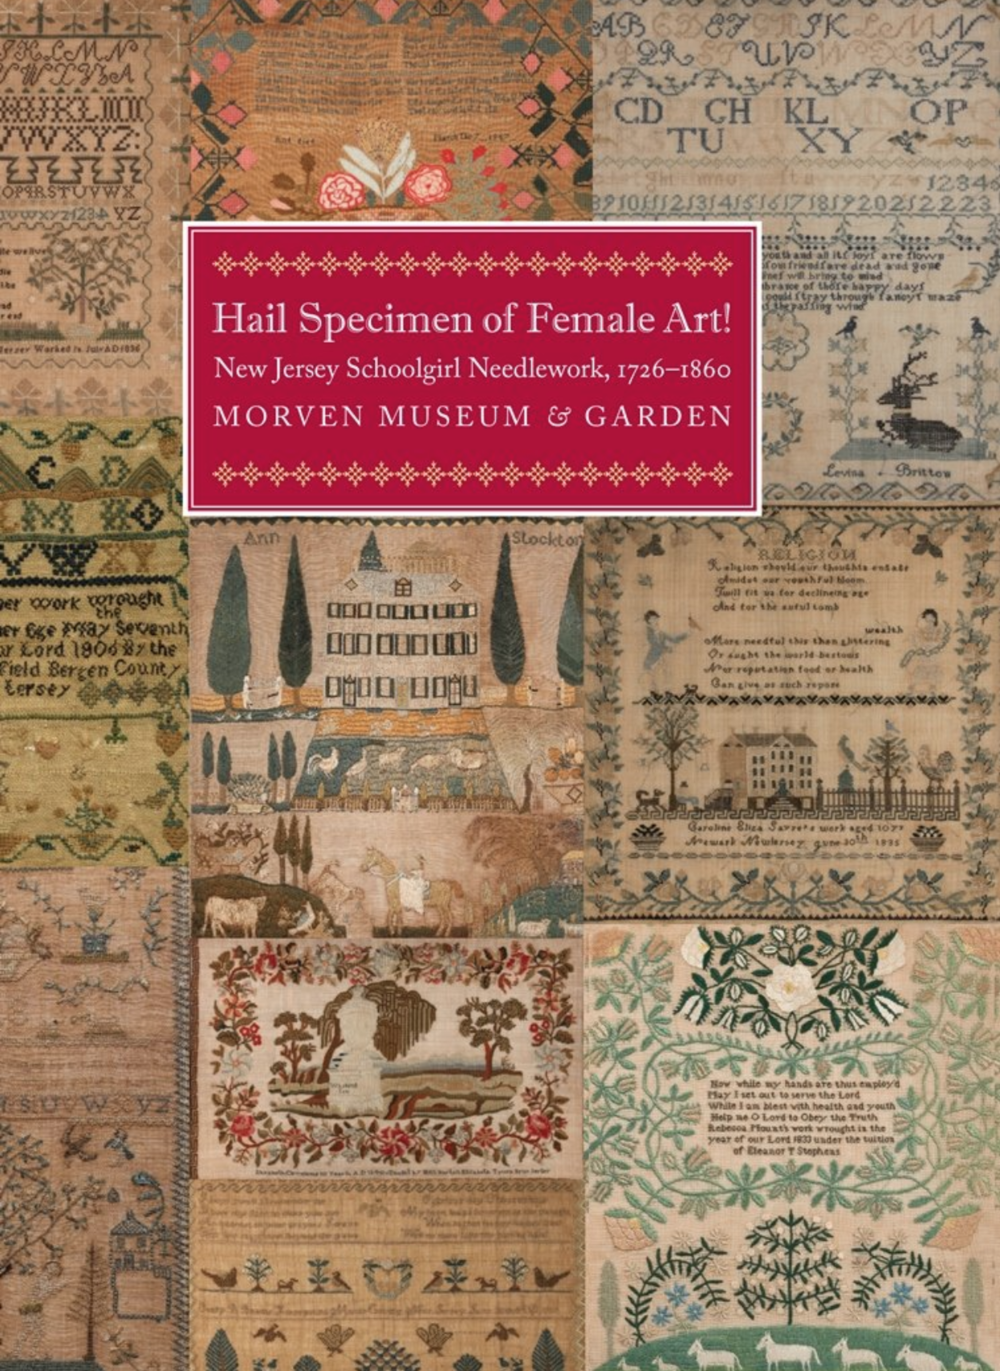 Hail Specimen of Female Art! New Jersey Schoolgirl Needlework, 1726 – 1860   Fully illustrated exhibition catalogue (187 pages) for Morven's landmark exhibition  Hail Specimen of Female Art! New Jersey Schoolgirl Needlework, 1726 – 1860